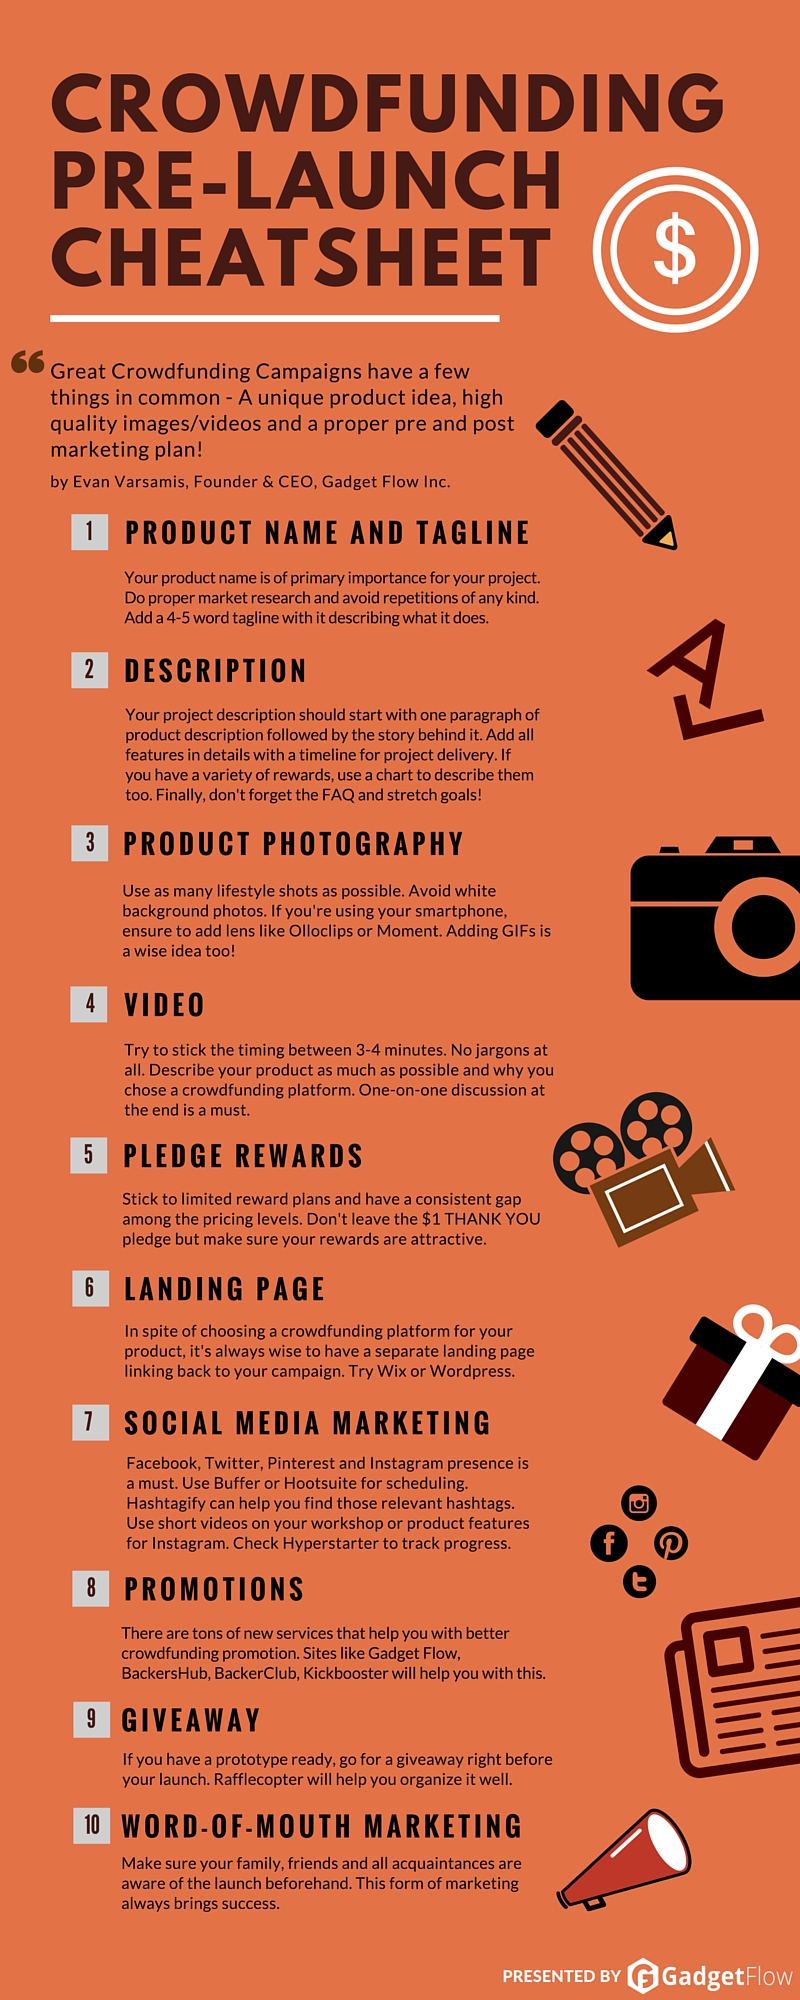 Infographic] Crowdfunding Pre-Launch Checklist : Crowdfunding